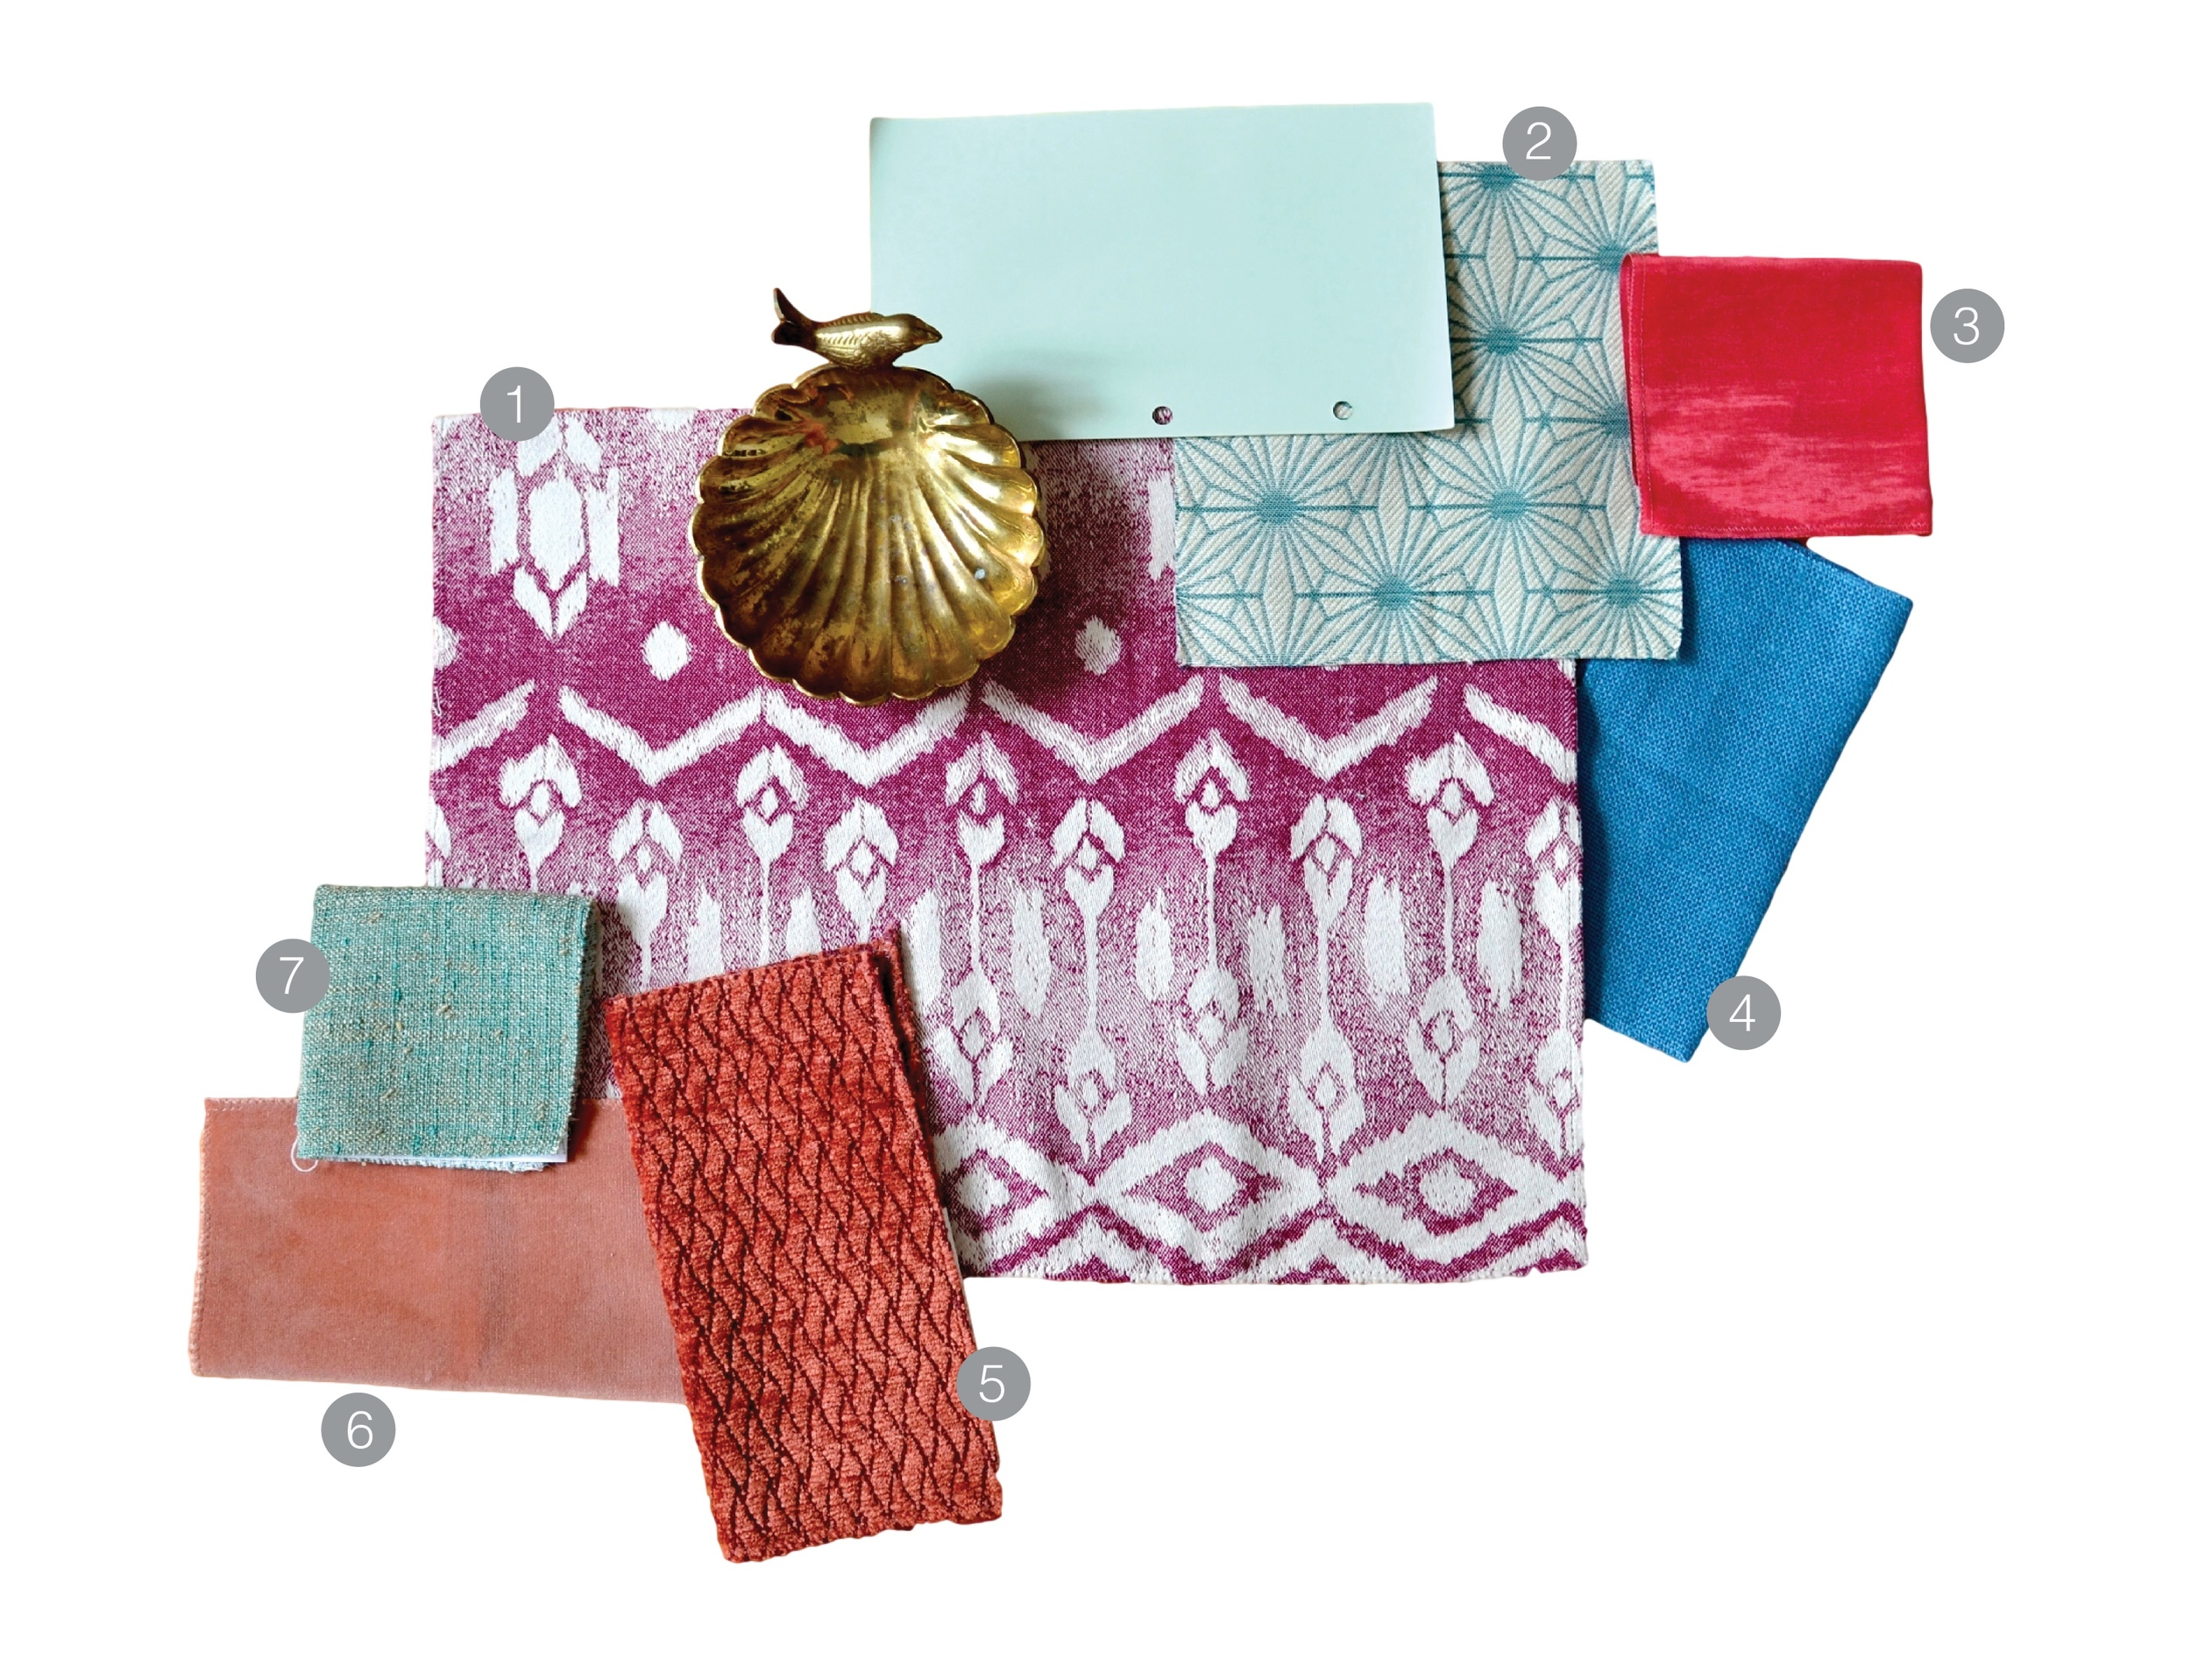 1.  Magenta Ikat  | 2.  Teal Geo  | 3.  Pink moire  | 4.  Blue linen  |  5.  Coral chenille  | 6.  Pink Velvet  | 7.  Teal textured